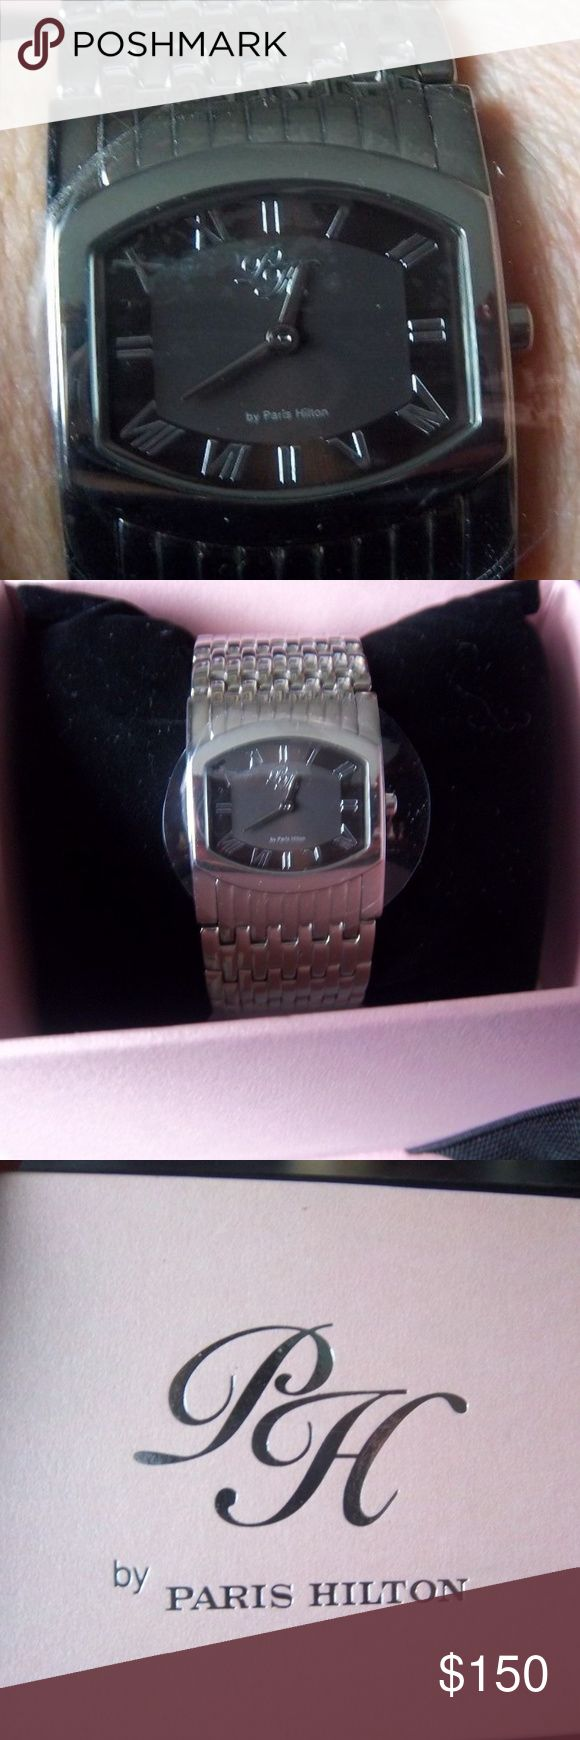 """PARIS HILTON WATCH, SILVERTONE, WIDE, NEW BEAUTIFULLY GIFT BOXED FOR YOU TO GIVE SOMEONE OR YOURSELF!! BRAND NEW STAINLESS, DOUBLE DEPLOYMENT BAND MEASURES 1 1/4"""" WIDE WILL FIT UP TO A 9"""" WRIST. DAKR CHOCOLATE FACE. Paris Hilton Accessories Watches"""